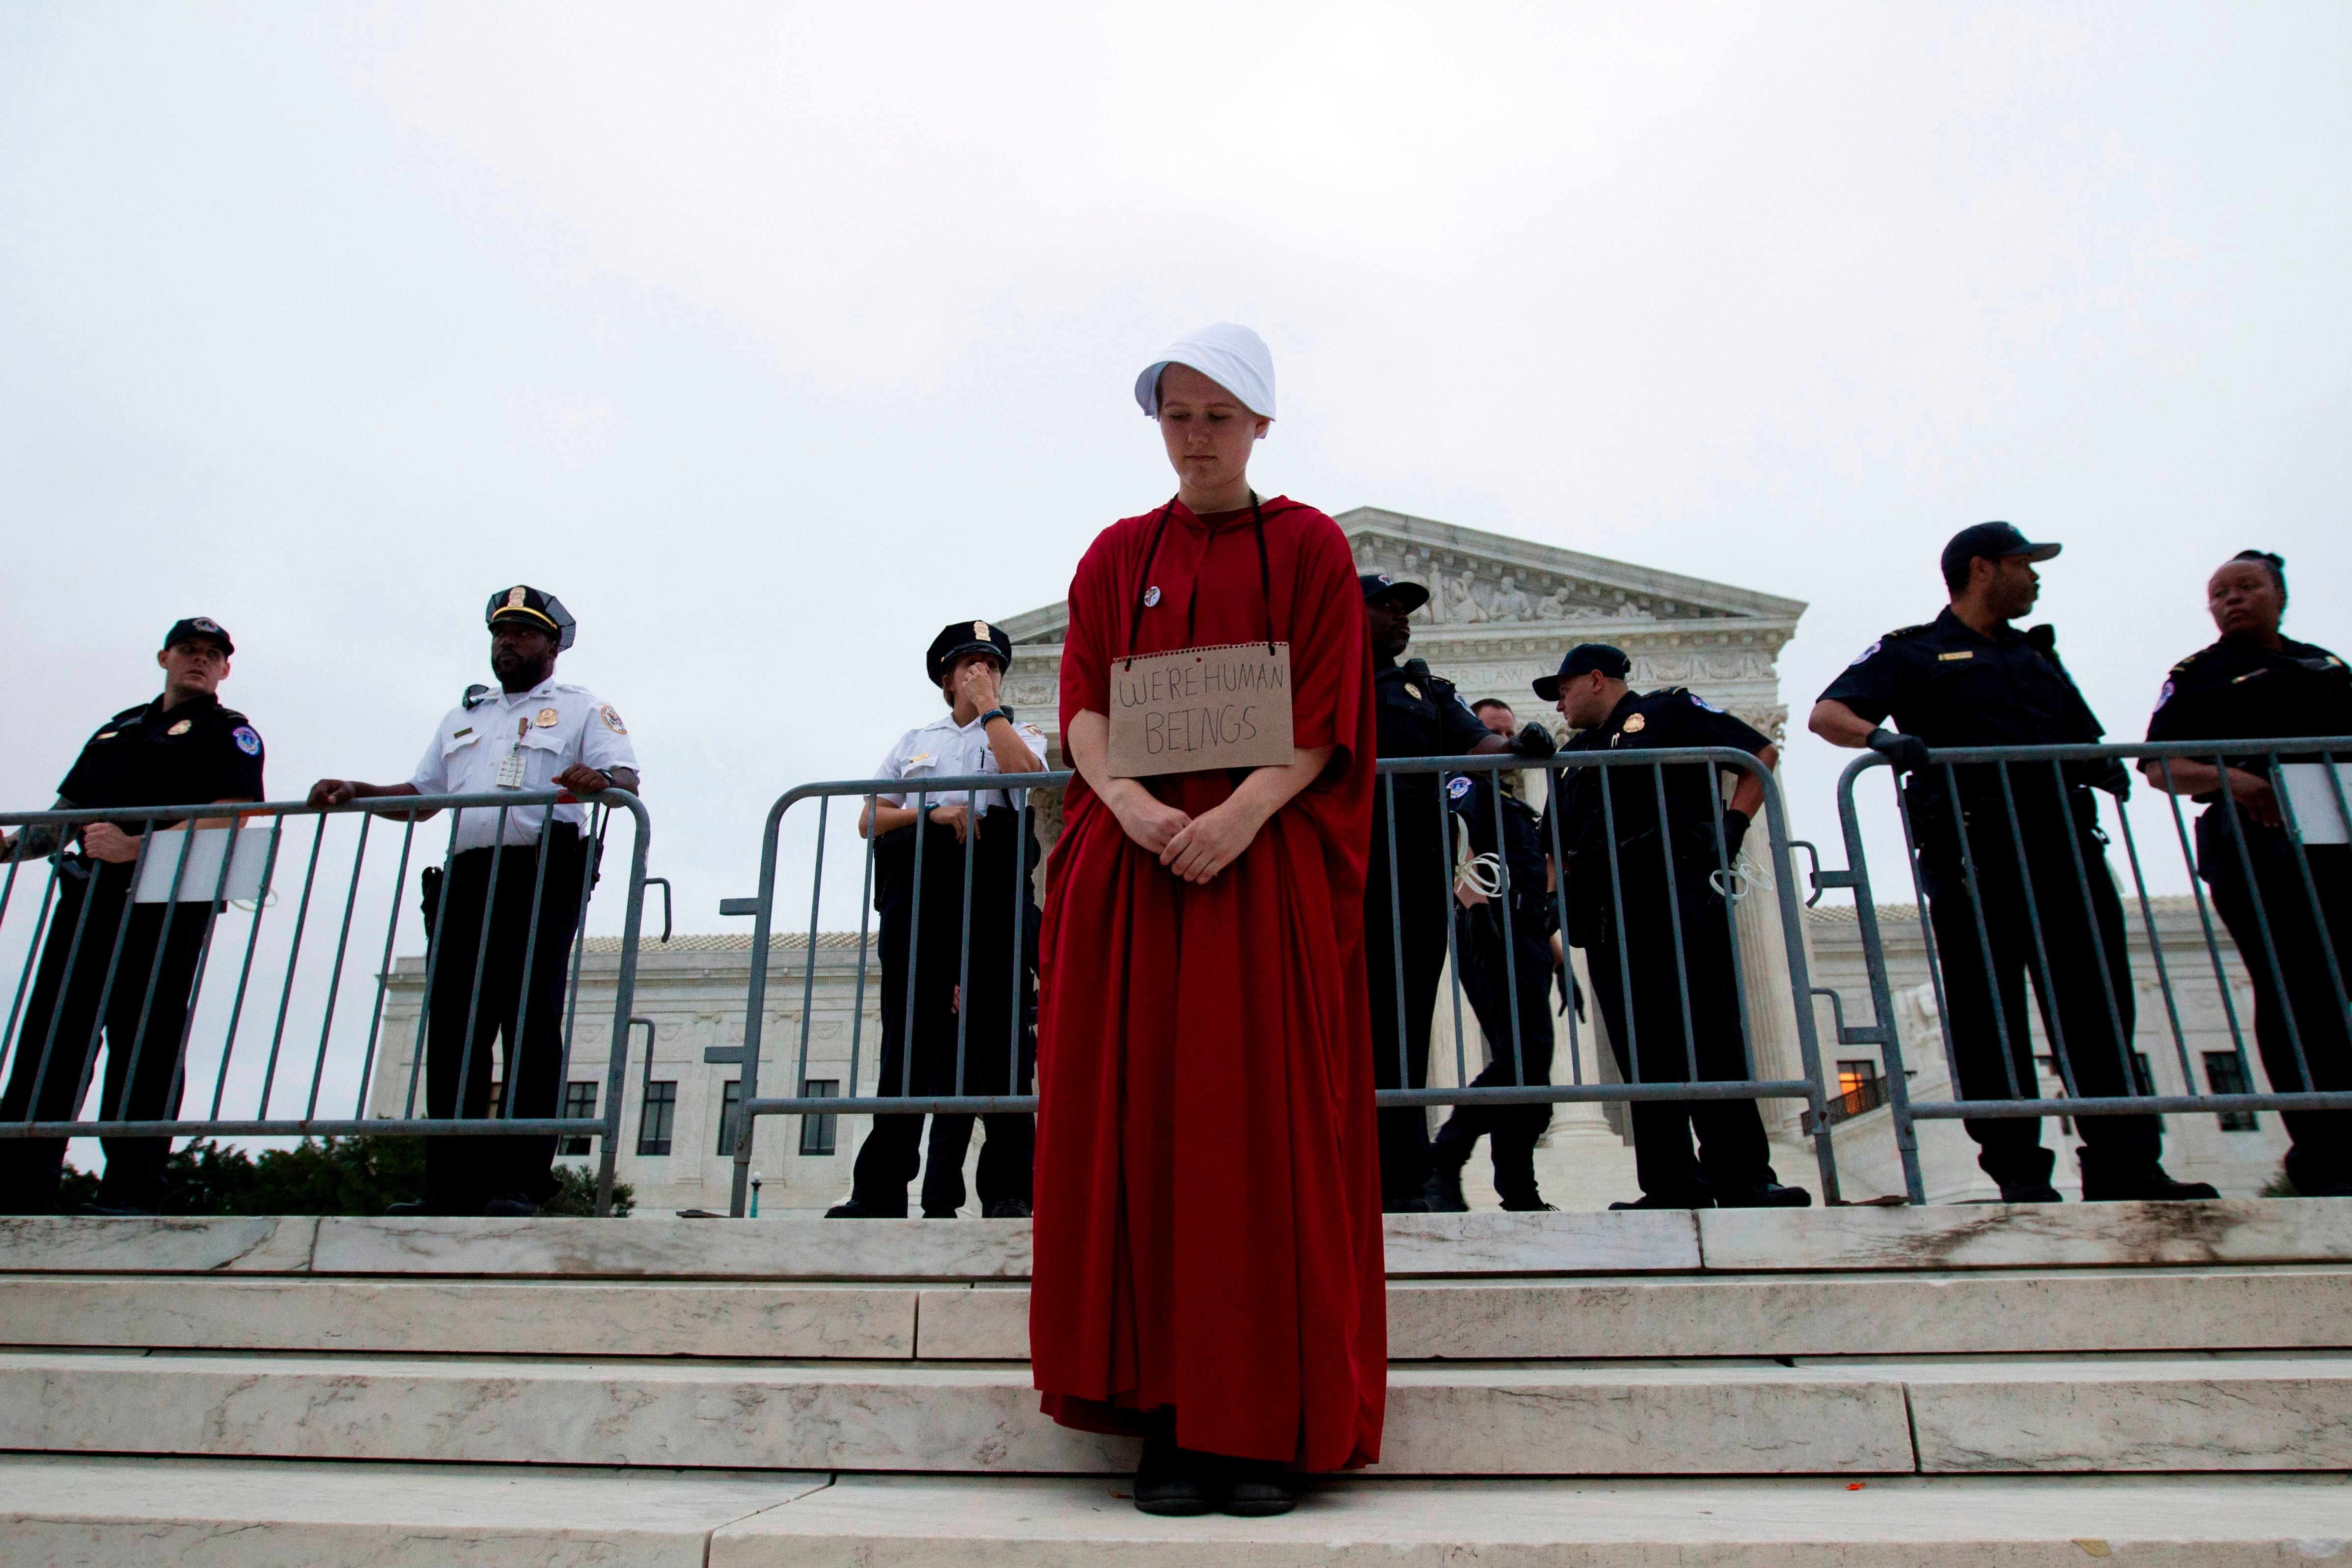 TOPSHOT - Payton Sander wearing a dress from The Handmaid's Tale protests at the steps of the US Supreme Court to protest against the appointment of Supreme Court nominee Brett Kavanaugh in Washington DC, on October 6, 2018. (Photo by Jose Luis Magana / AFP)        (Photo credit should read JOSE LUIS MAGANA/AFP/Getty Images)